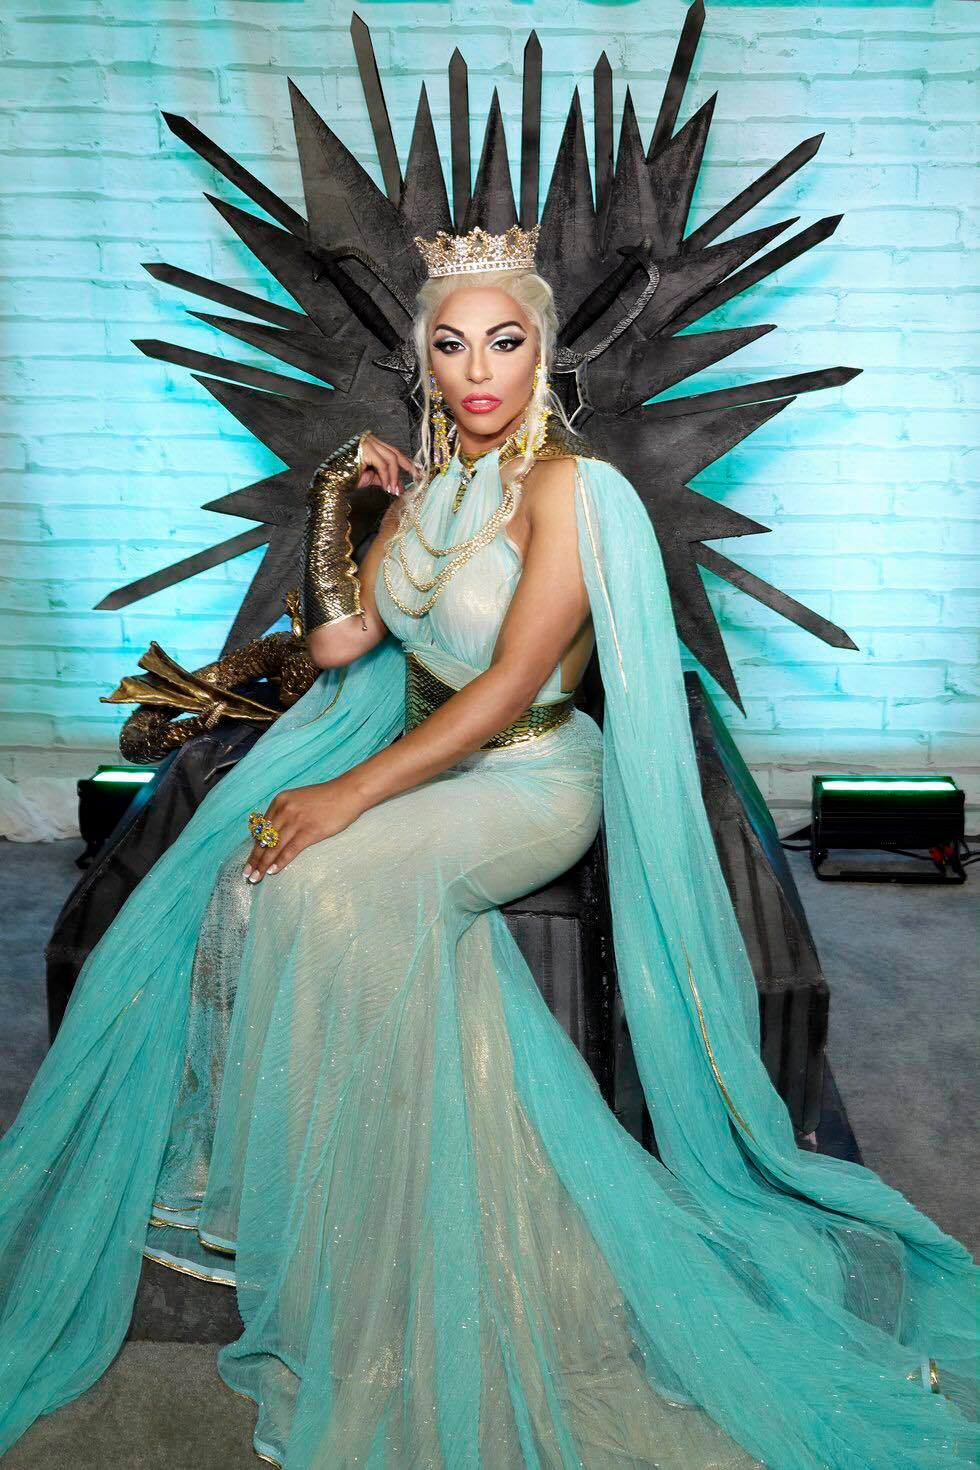 Shangela - Photo by Albert Sanchez and Pedro Zalba